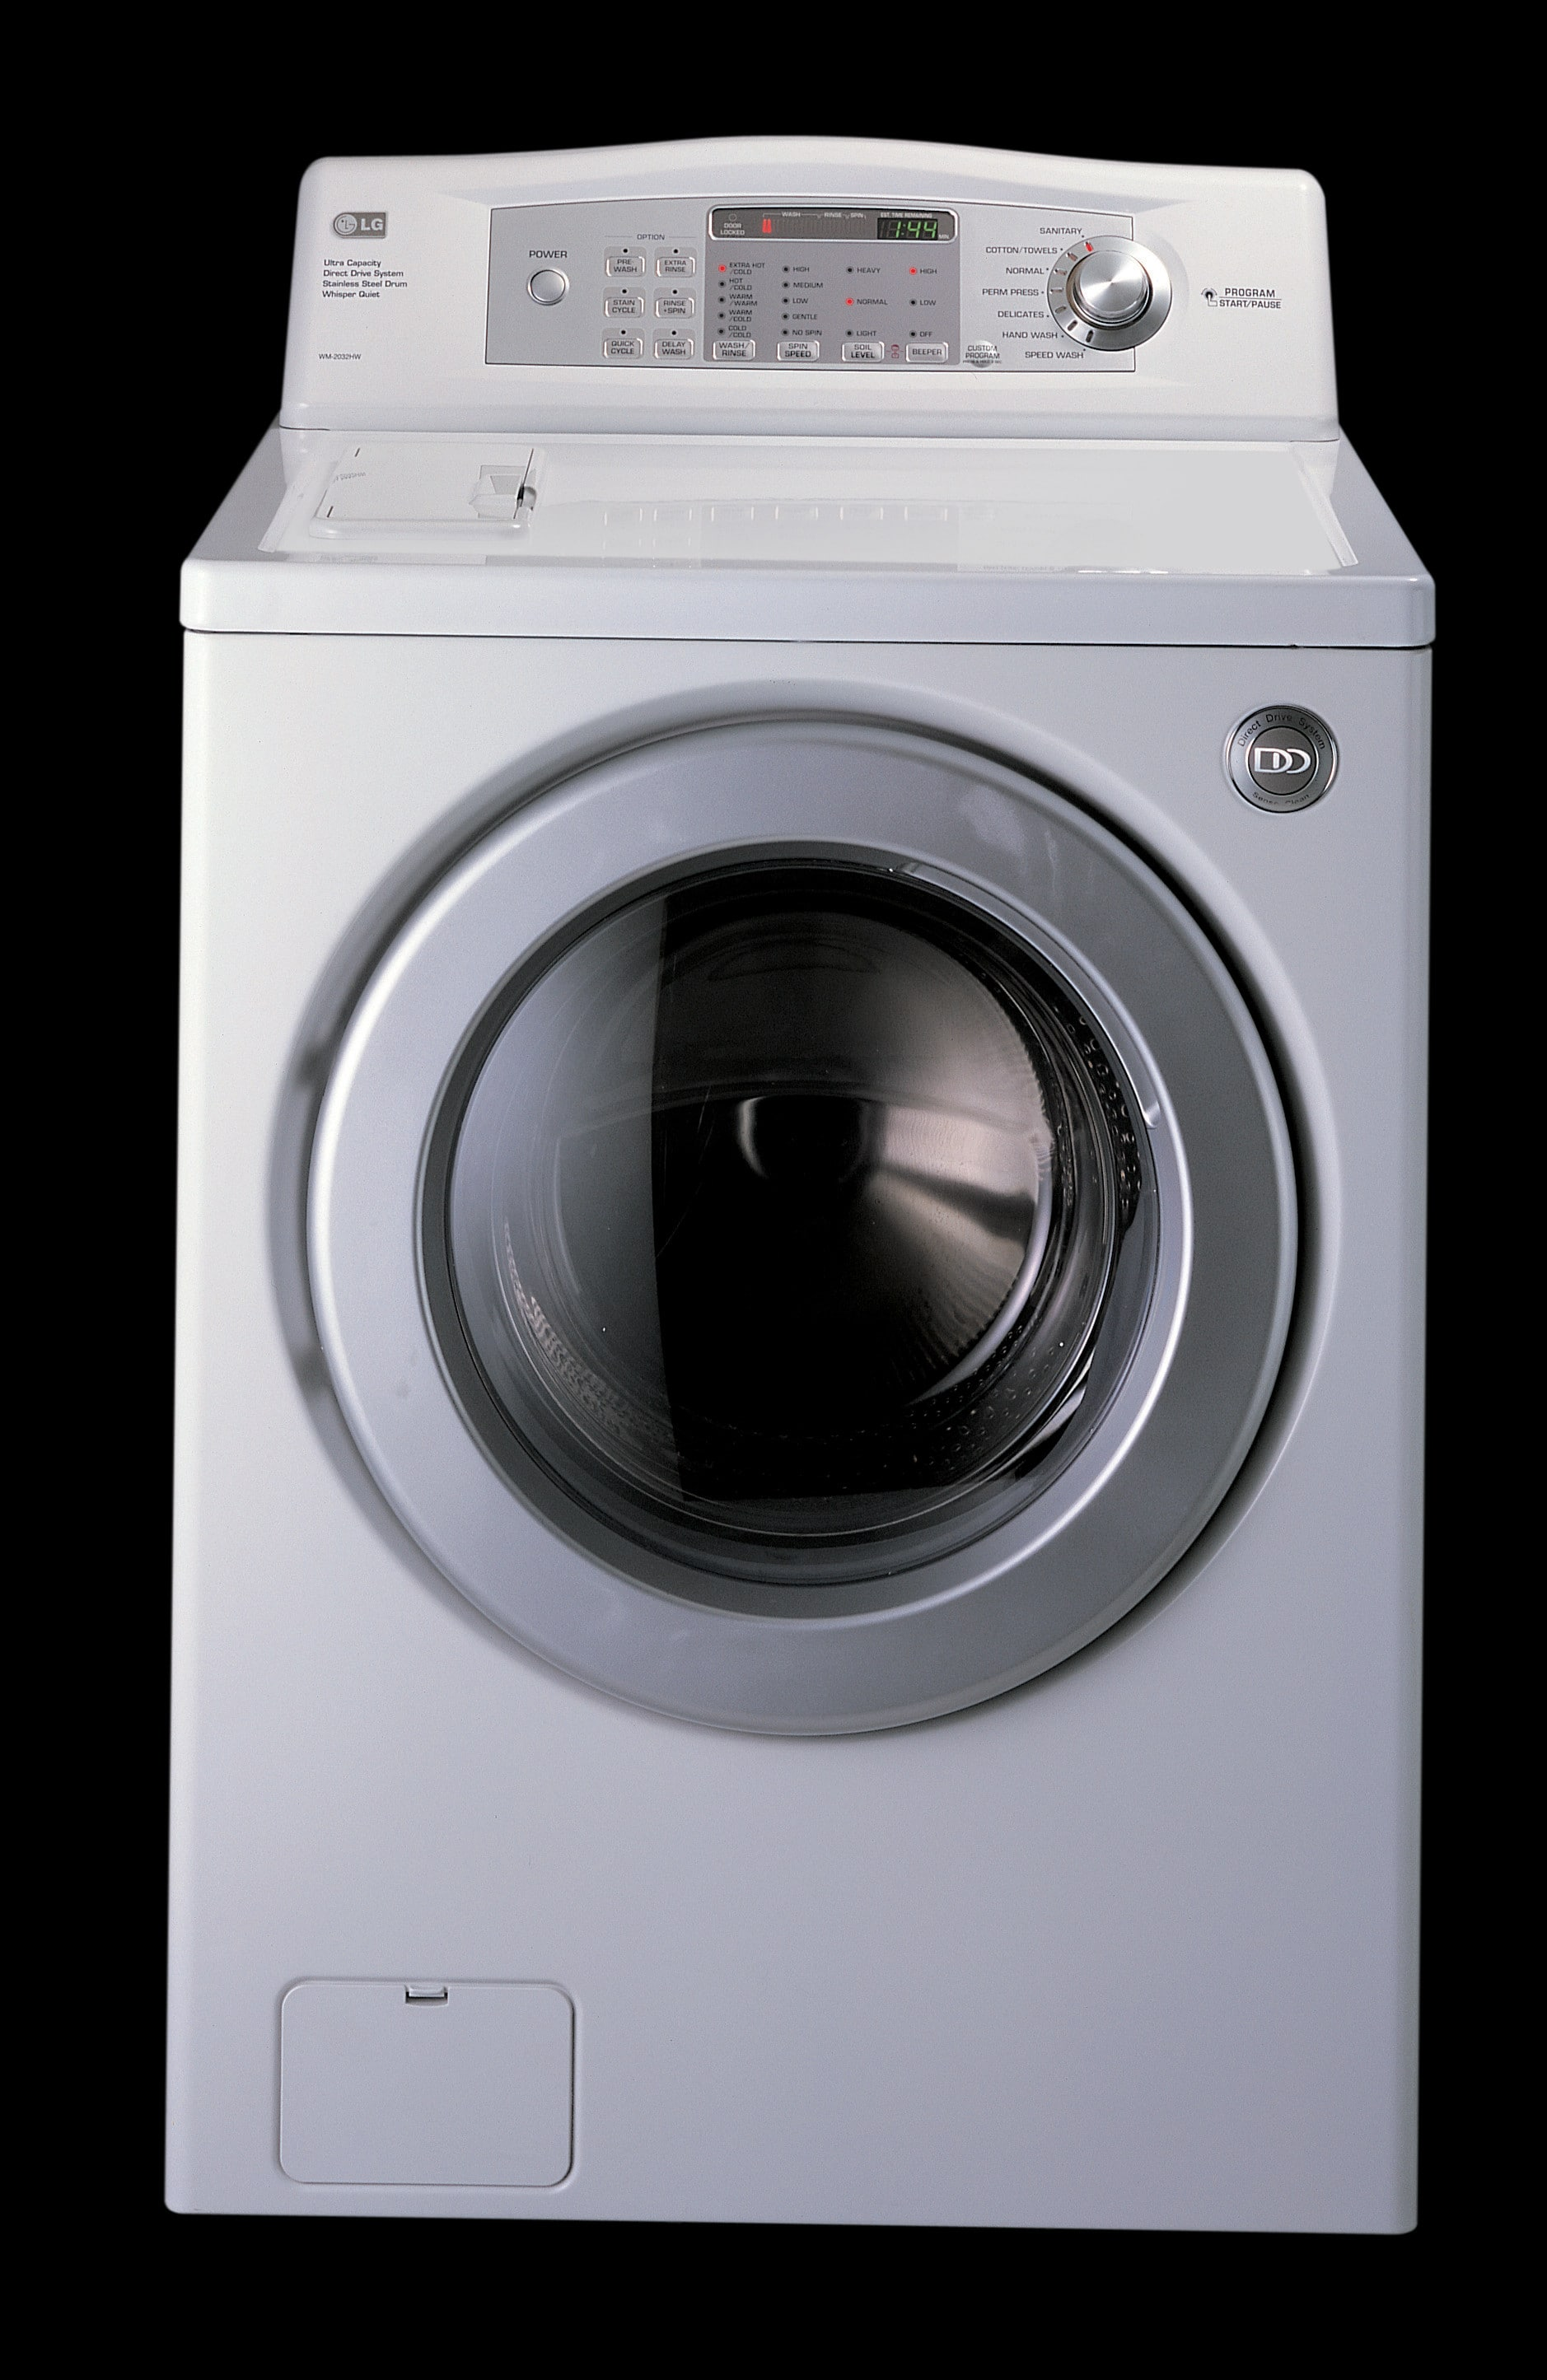 LG WM2032HW 27 Inch Front Load Washer w/ 3.72 Cu. Ft. Capacity, 7 Washing  Programs & 5 Temperature Levels: White/Silver Door Trim